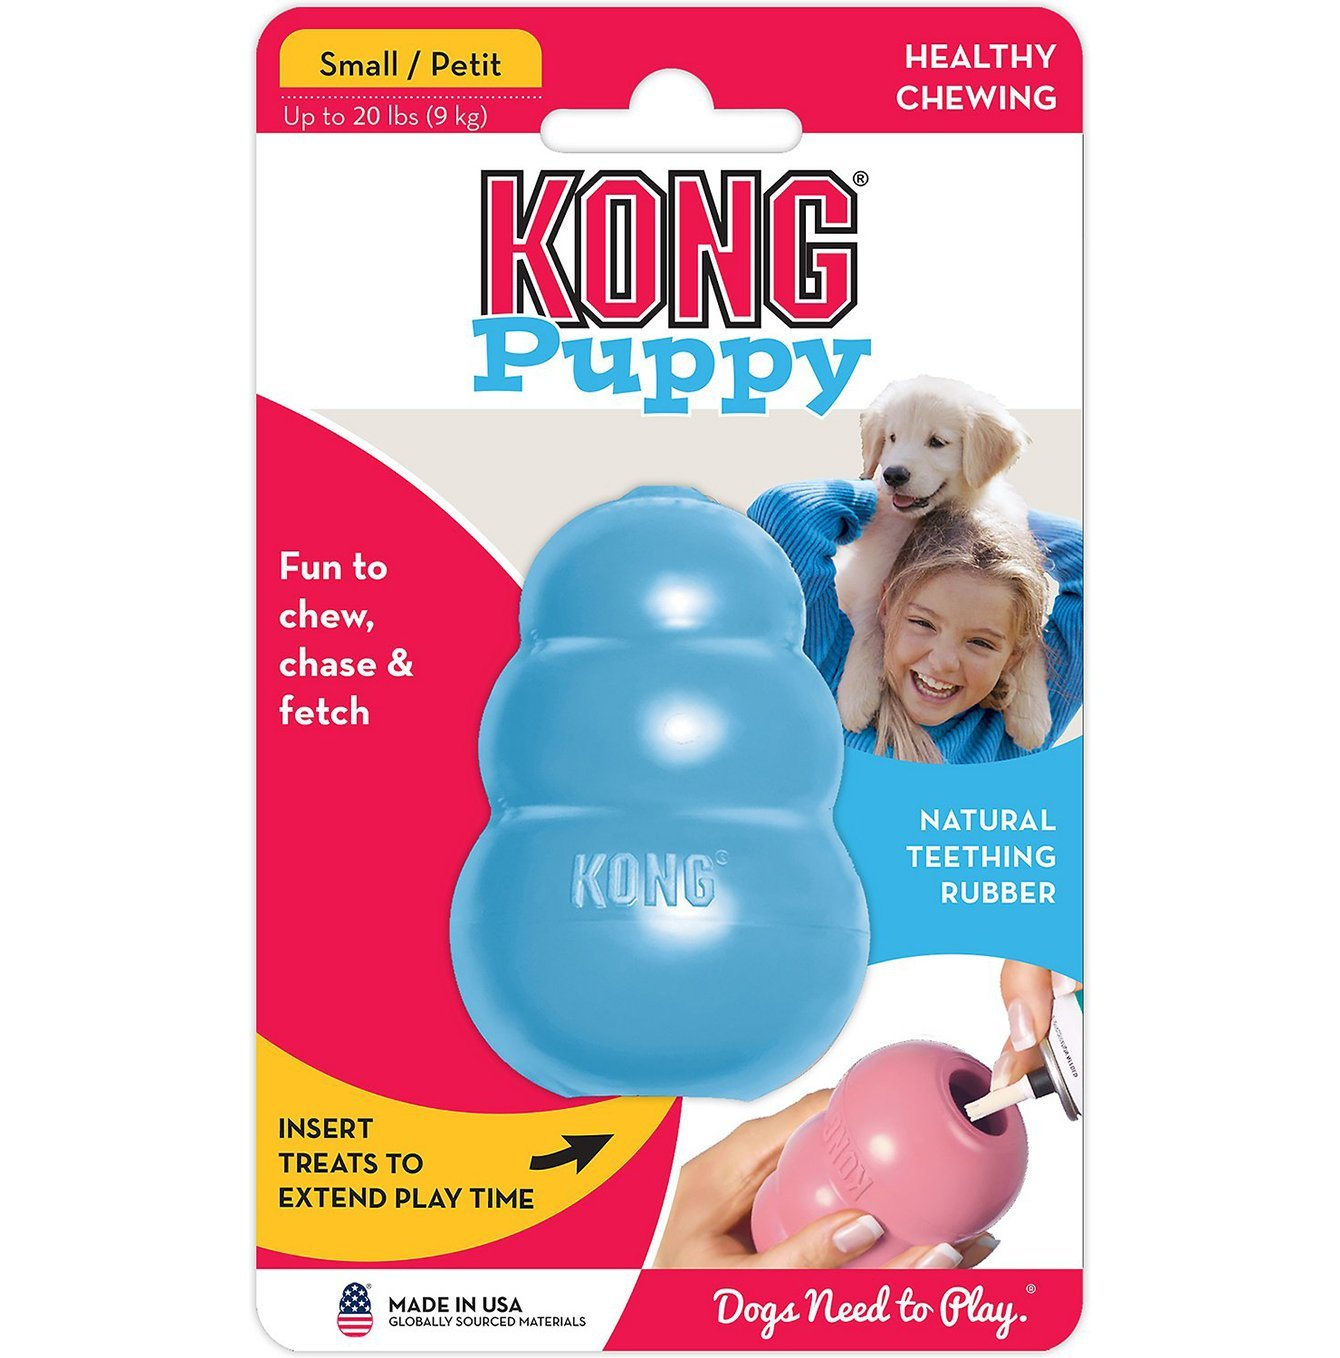 blue_puppy_kong_1920x